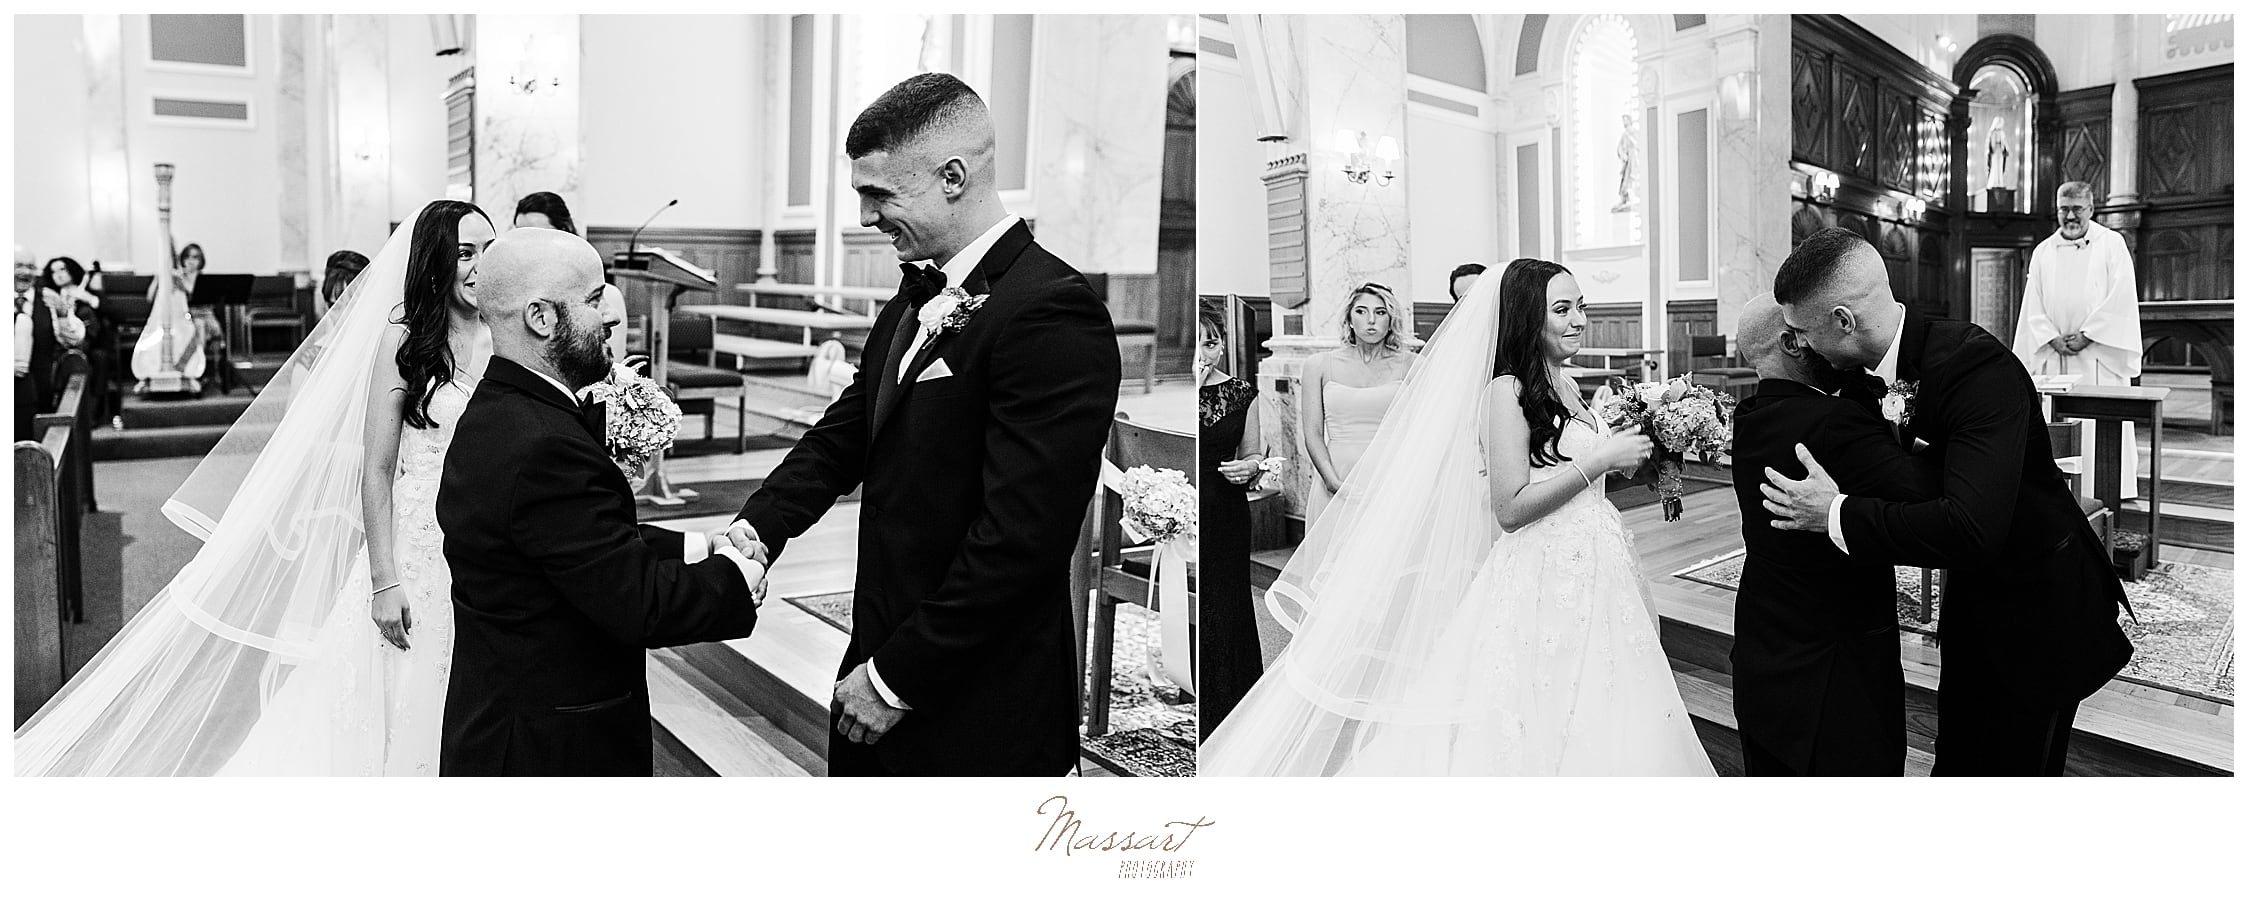 Rhode Island wedding ceremony in church with RI wedding photographers Massart Photography